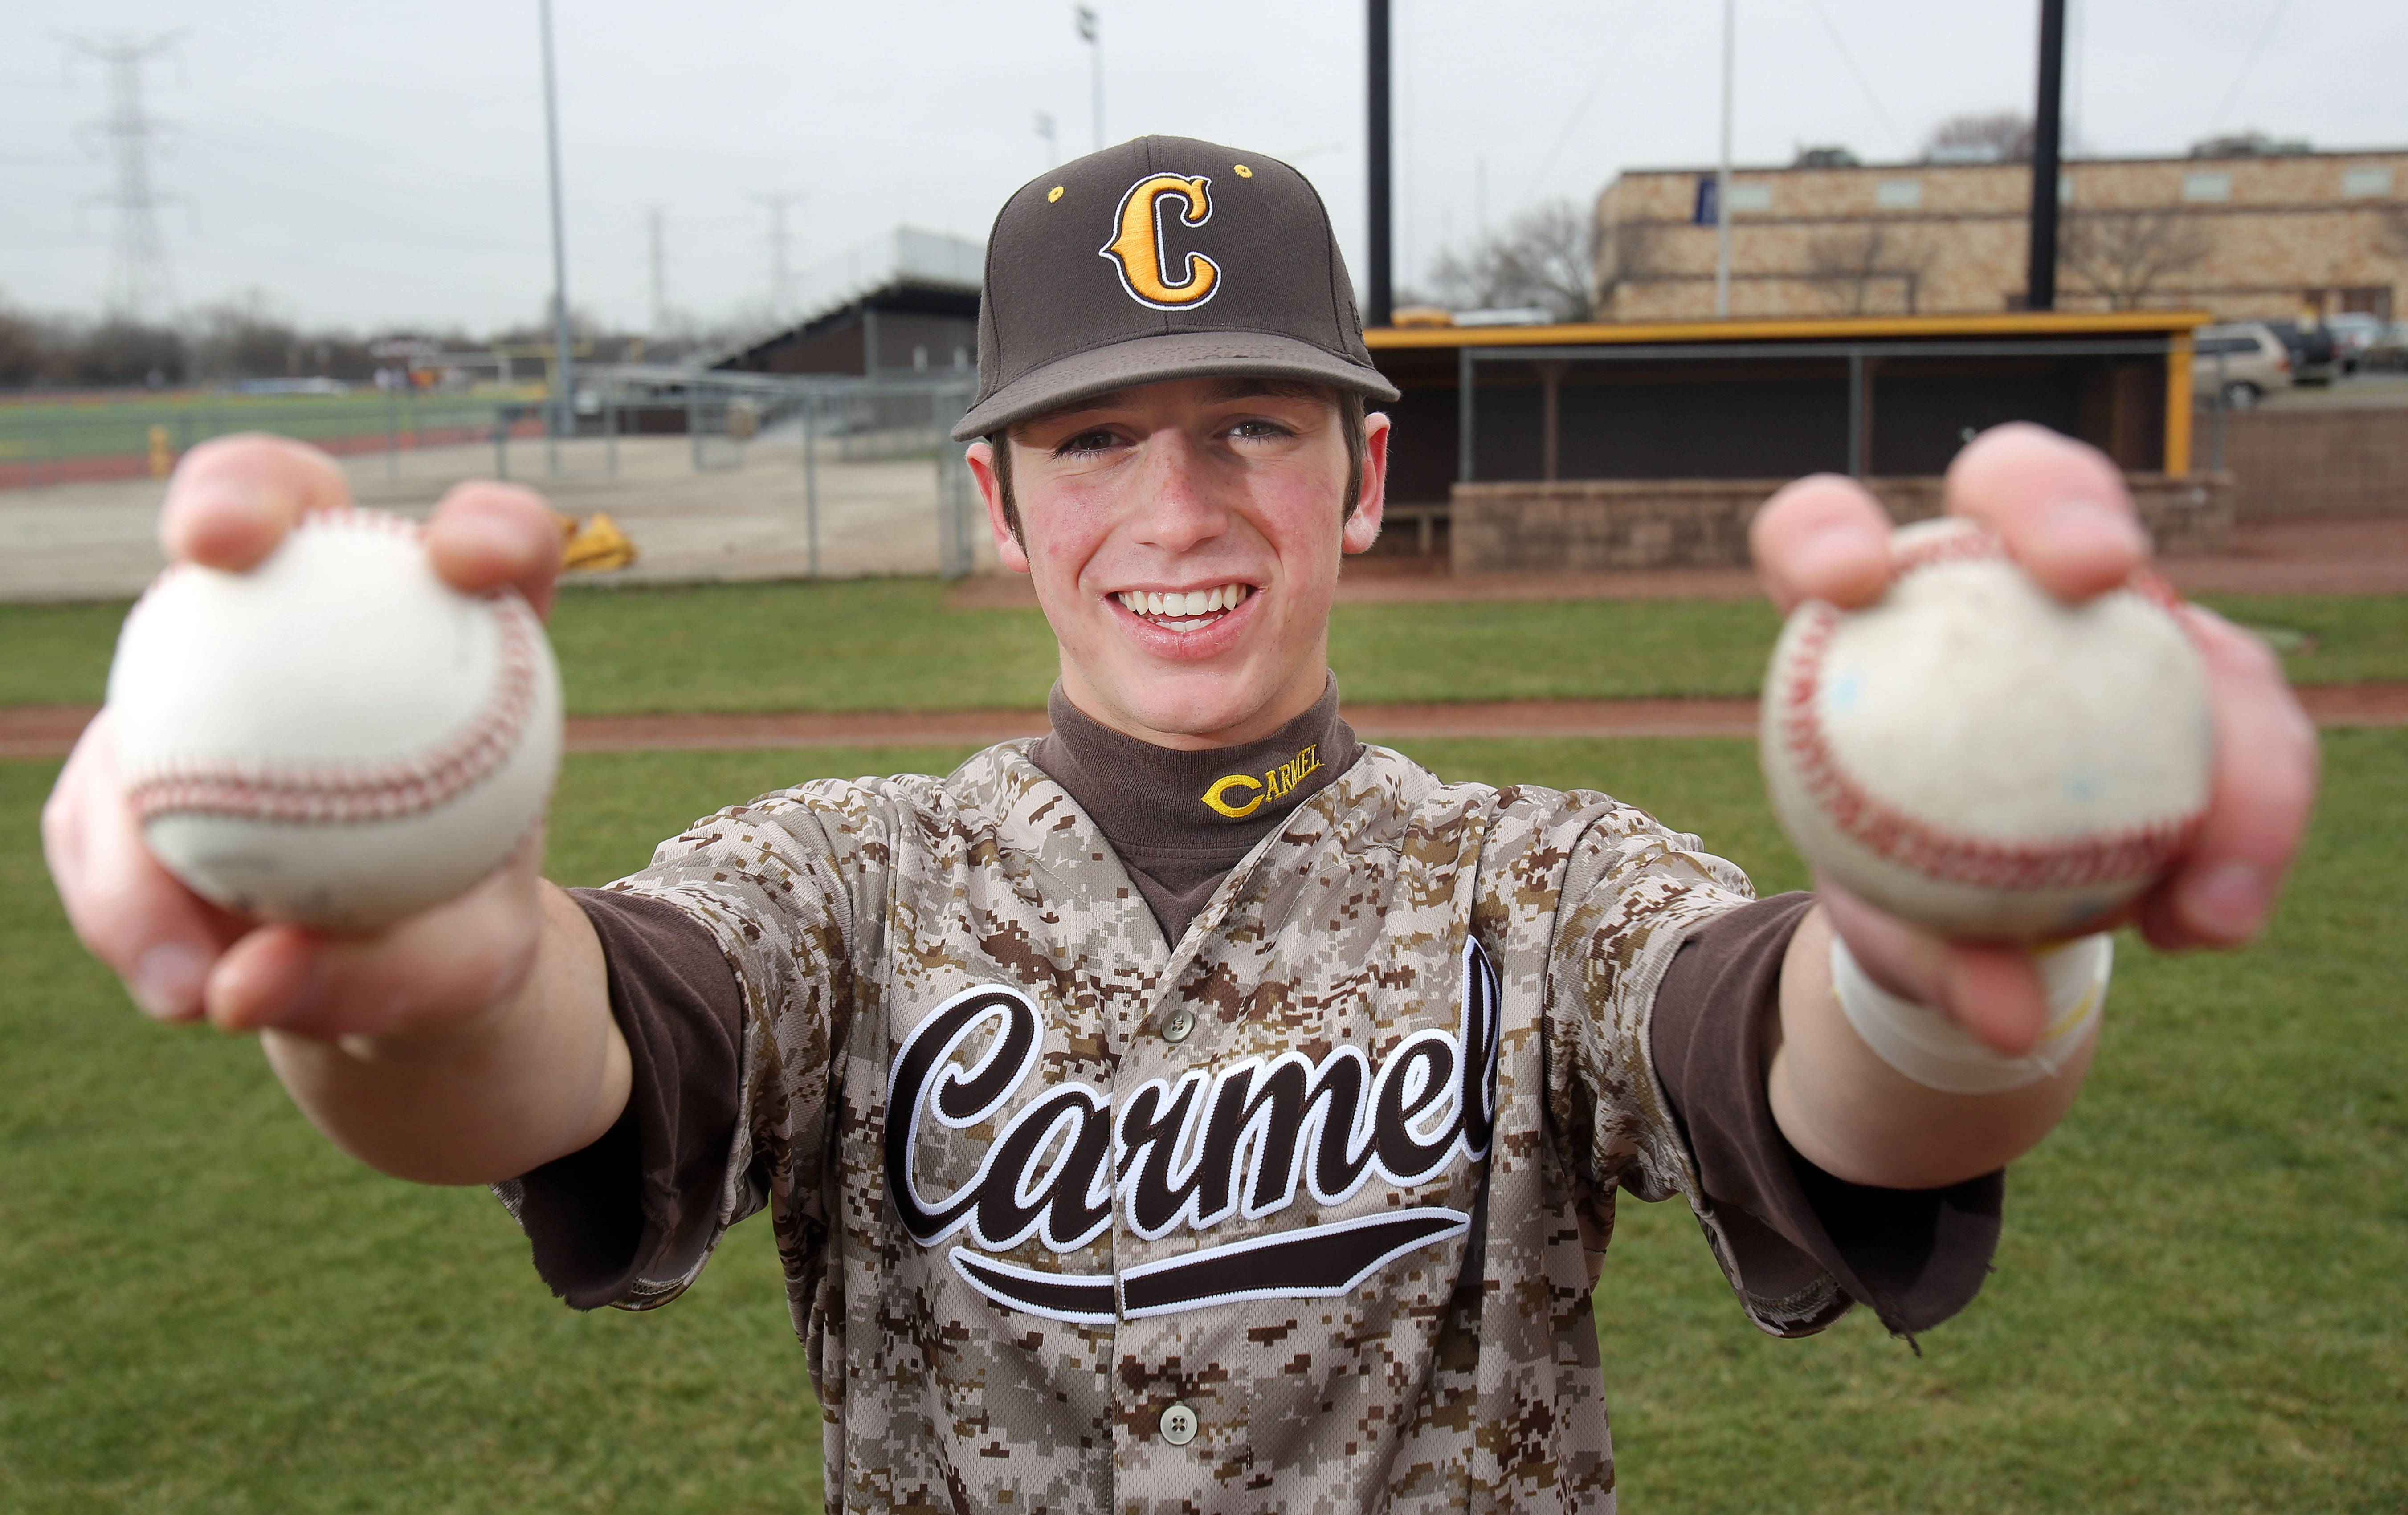 Carmel's Joe Santoro has the ability to pitch both right- and left-handed, and frequently does so in games.